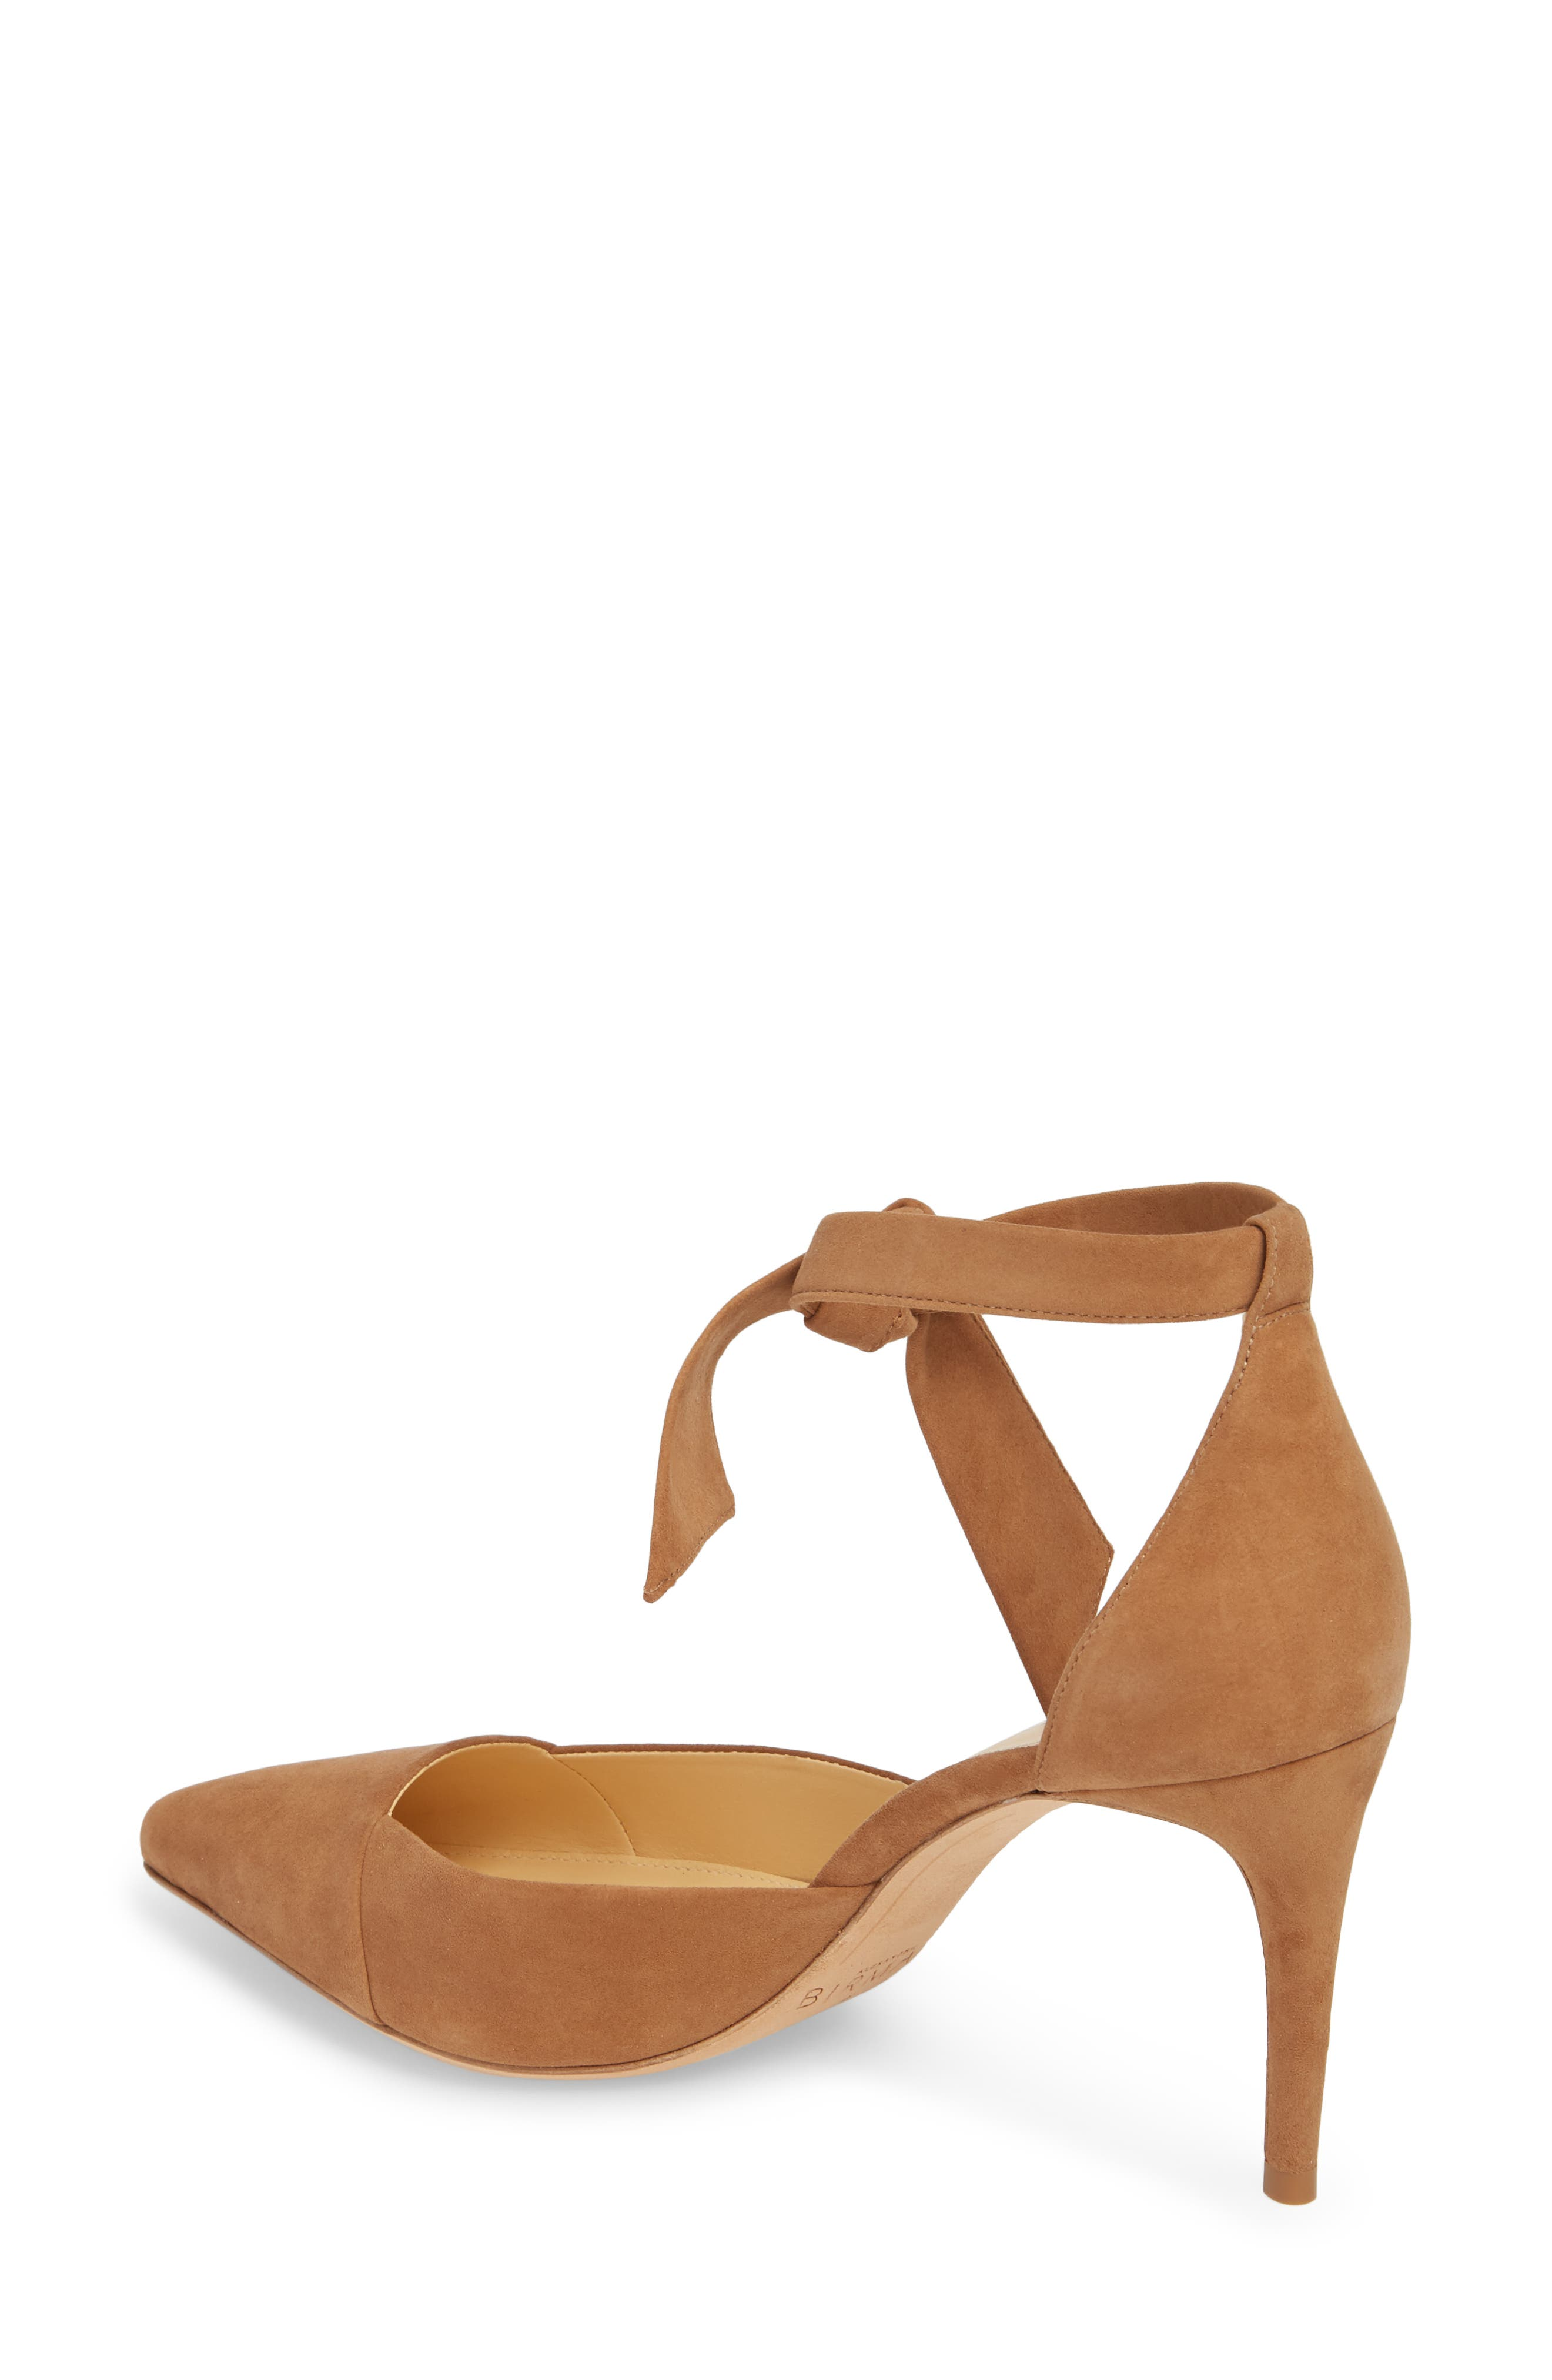 Azalea Tie Strap Pump,                             Alternate thumbnail 2, color,                             LIGHT BEIGE